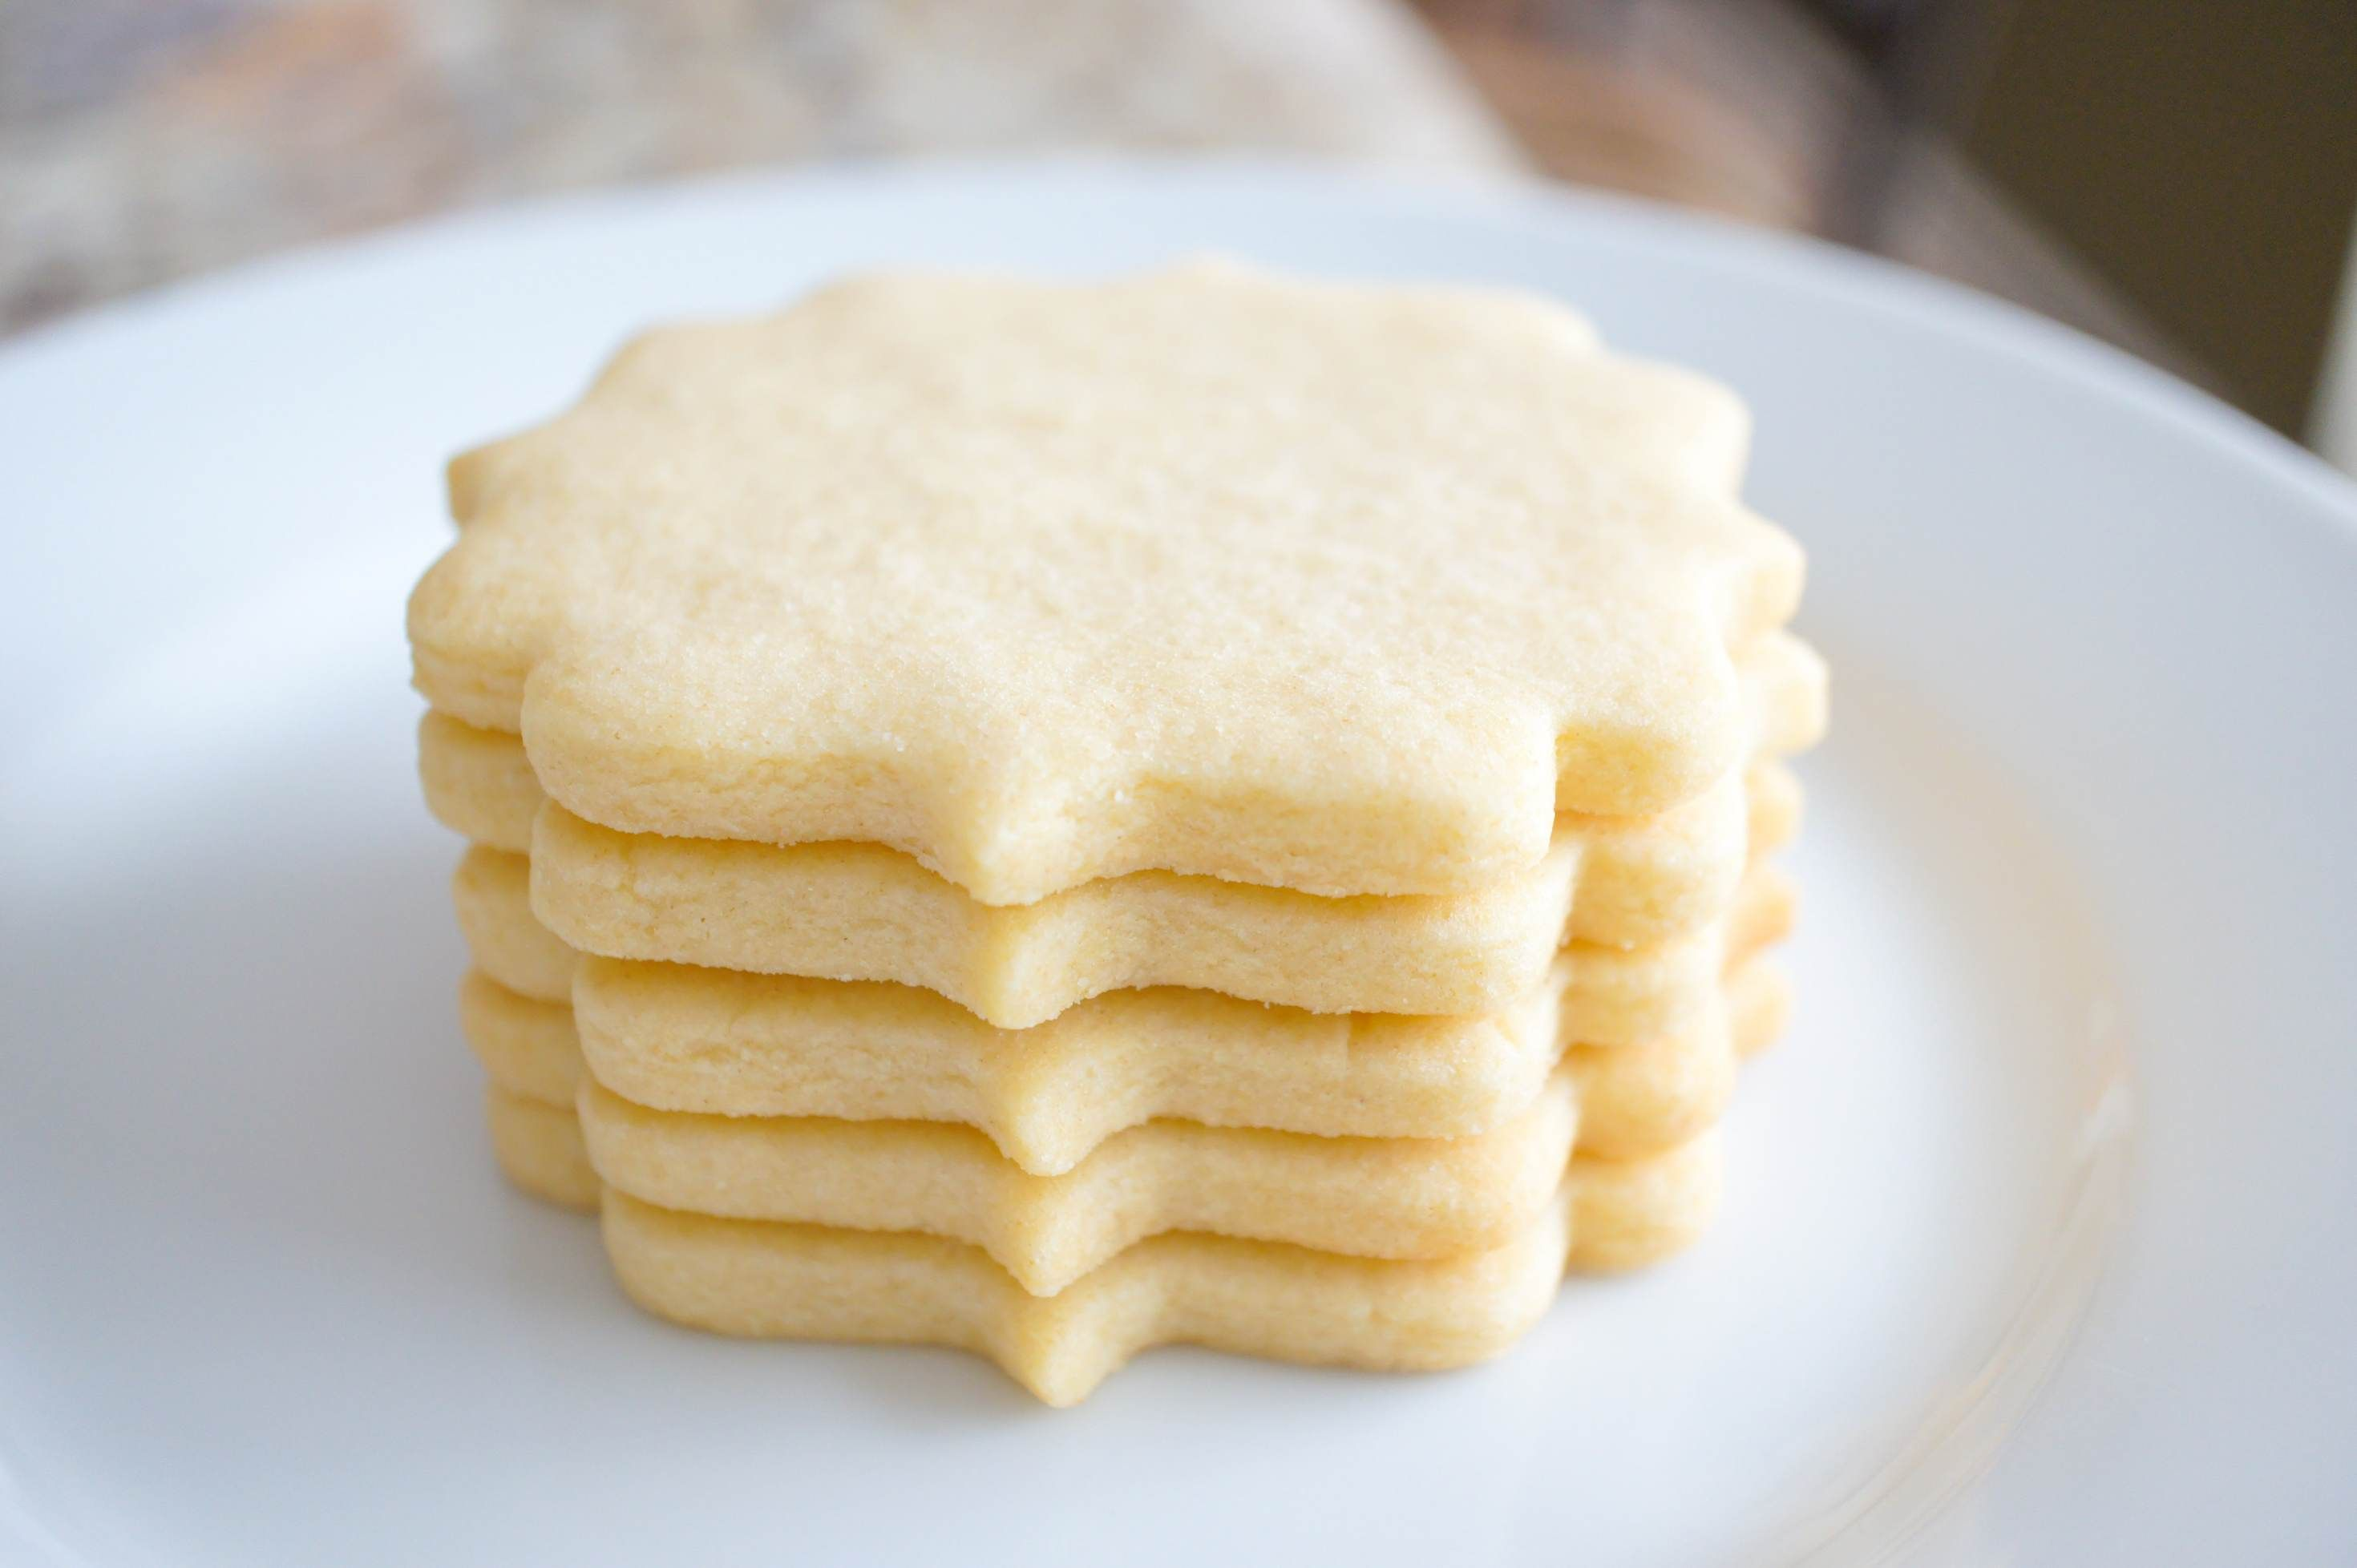 Perfect Sugar Cookie cut outs are soft, thick, sinfully buttery and taste amazing whether they are decorated or not! This is the best no-chill sugar cookie cut out recipe! These cookies are easy to make and great to decorate with royal icing. Make easy sugar cookie cut outs that keep their shape & edges. #Bestsugarcookierecipe #Cookierecipes #Easycookierecipes #Softsugarcookies #decoratedcookies #sugarcookies #nochillcookies